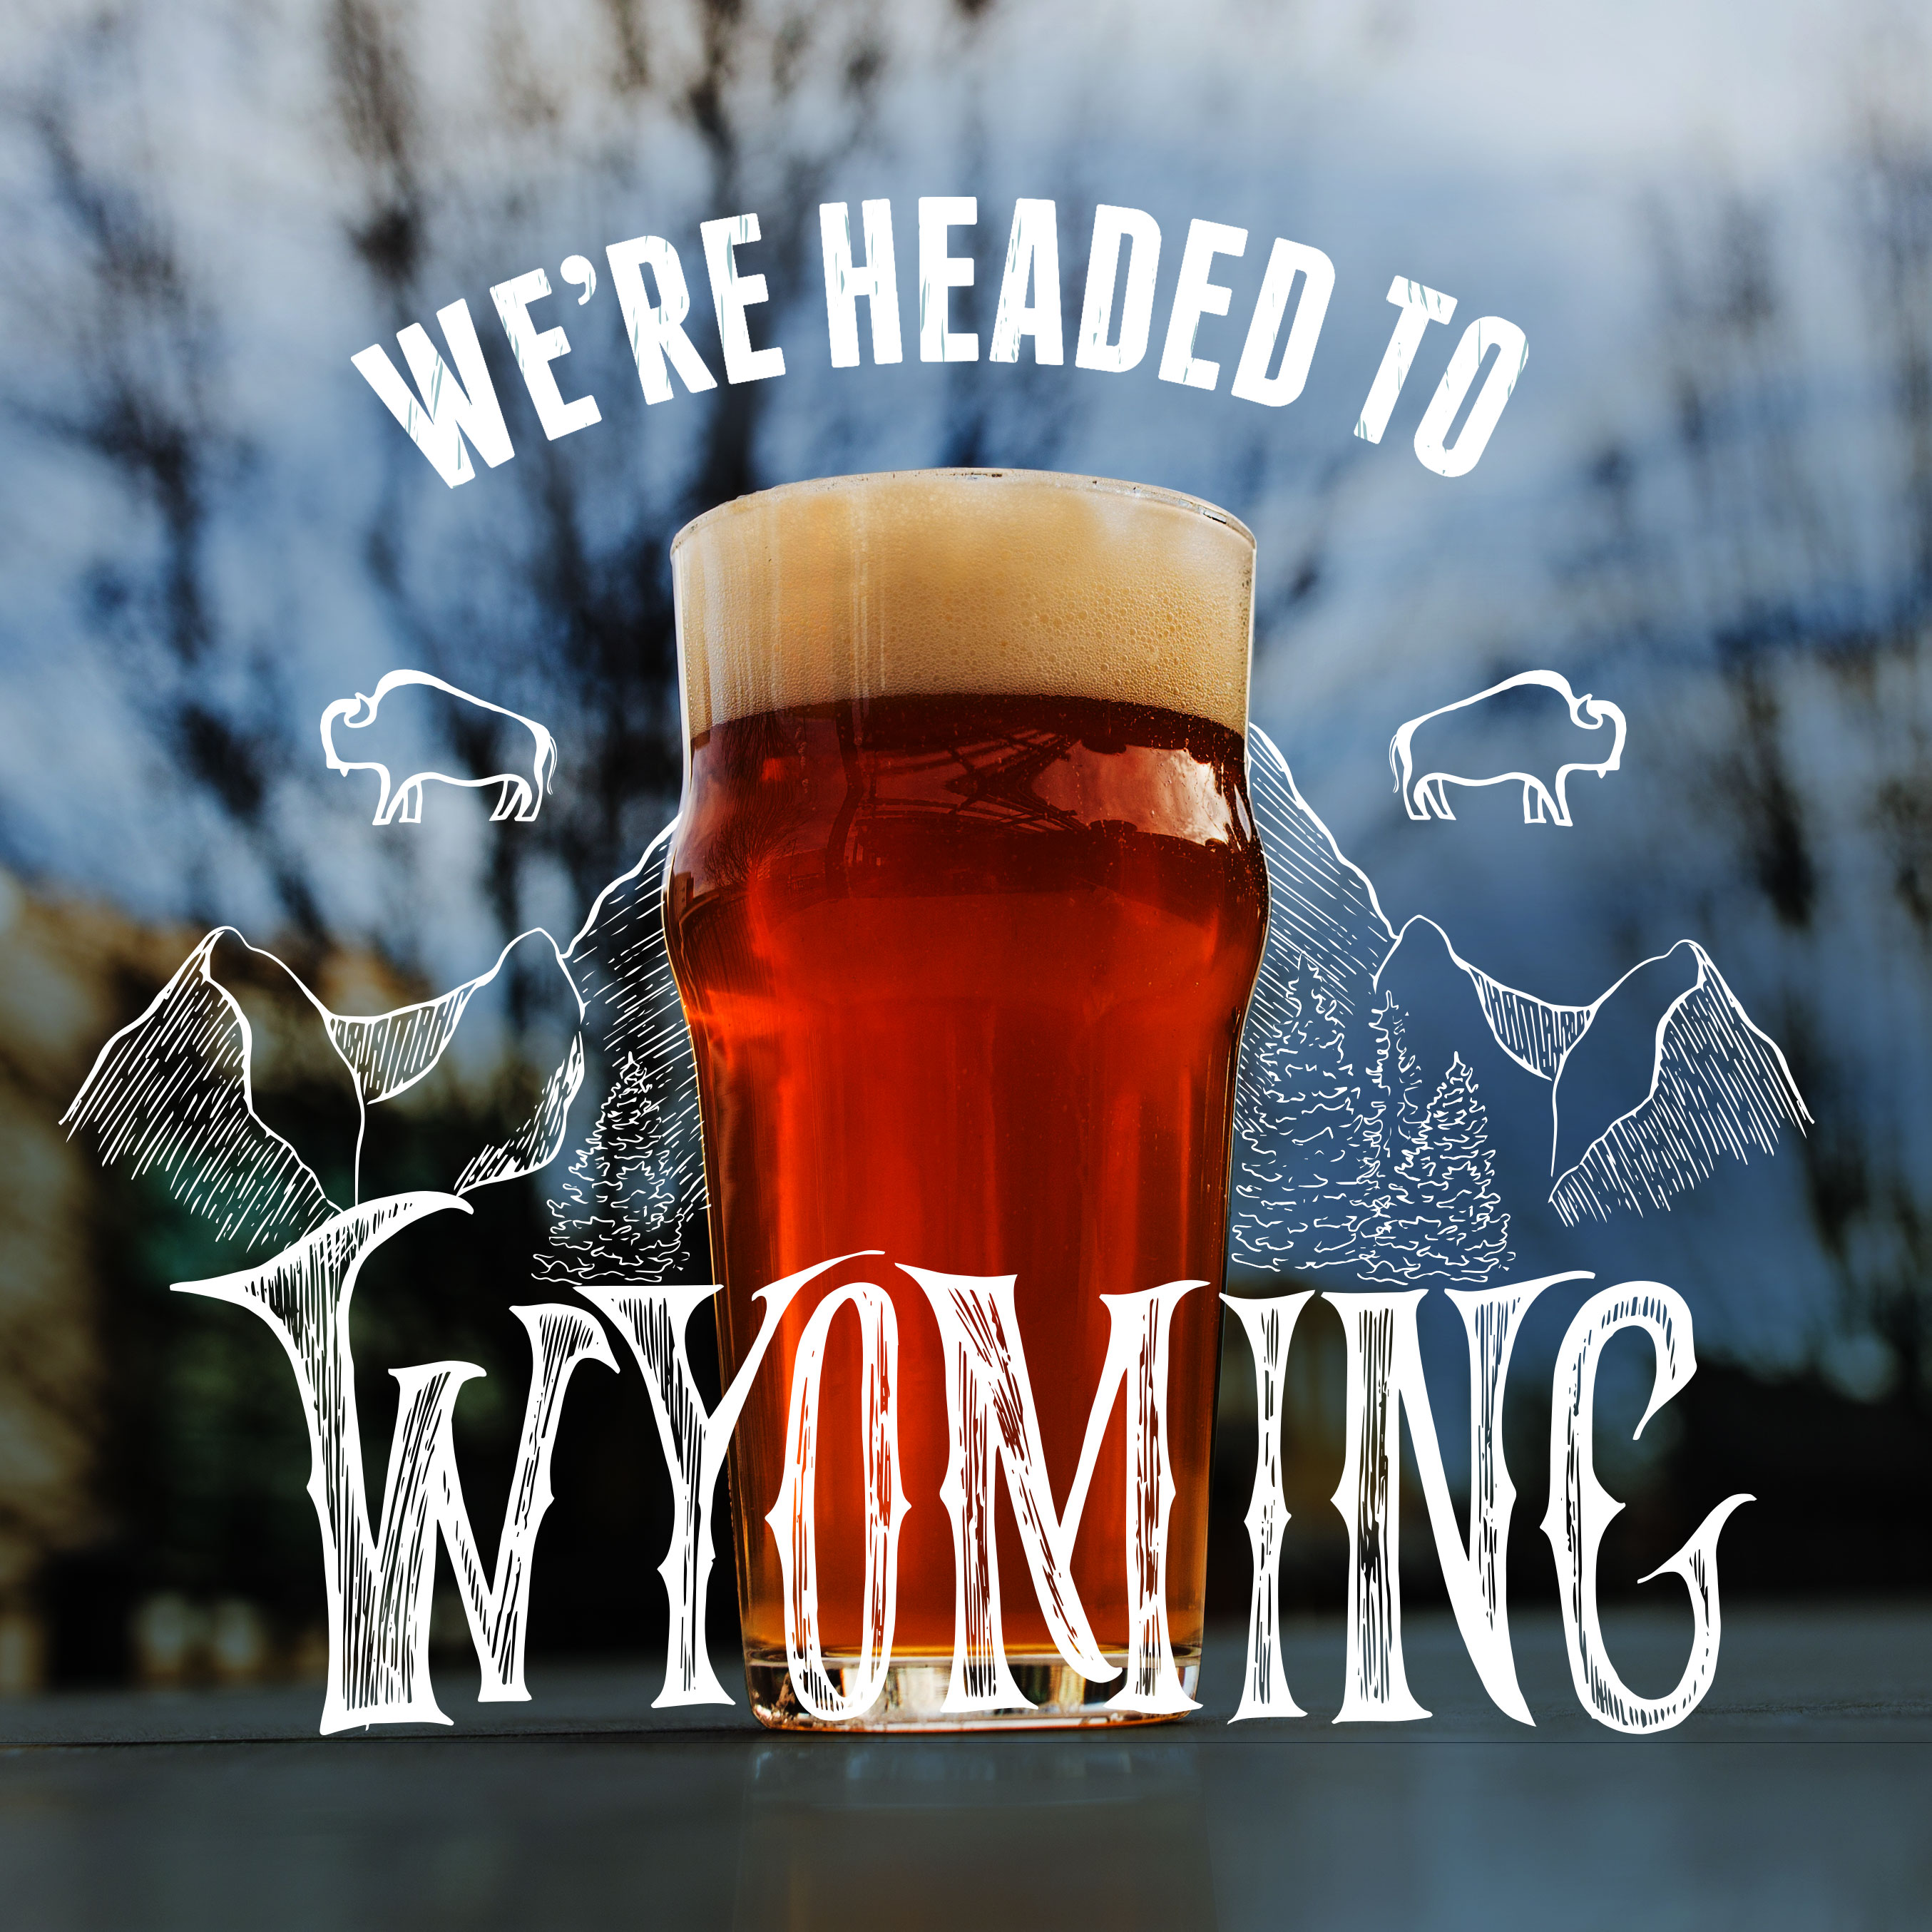 Founders We're Headed to Wyoming announcement